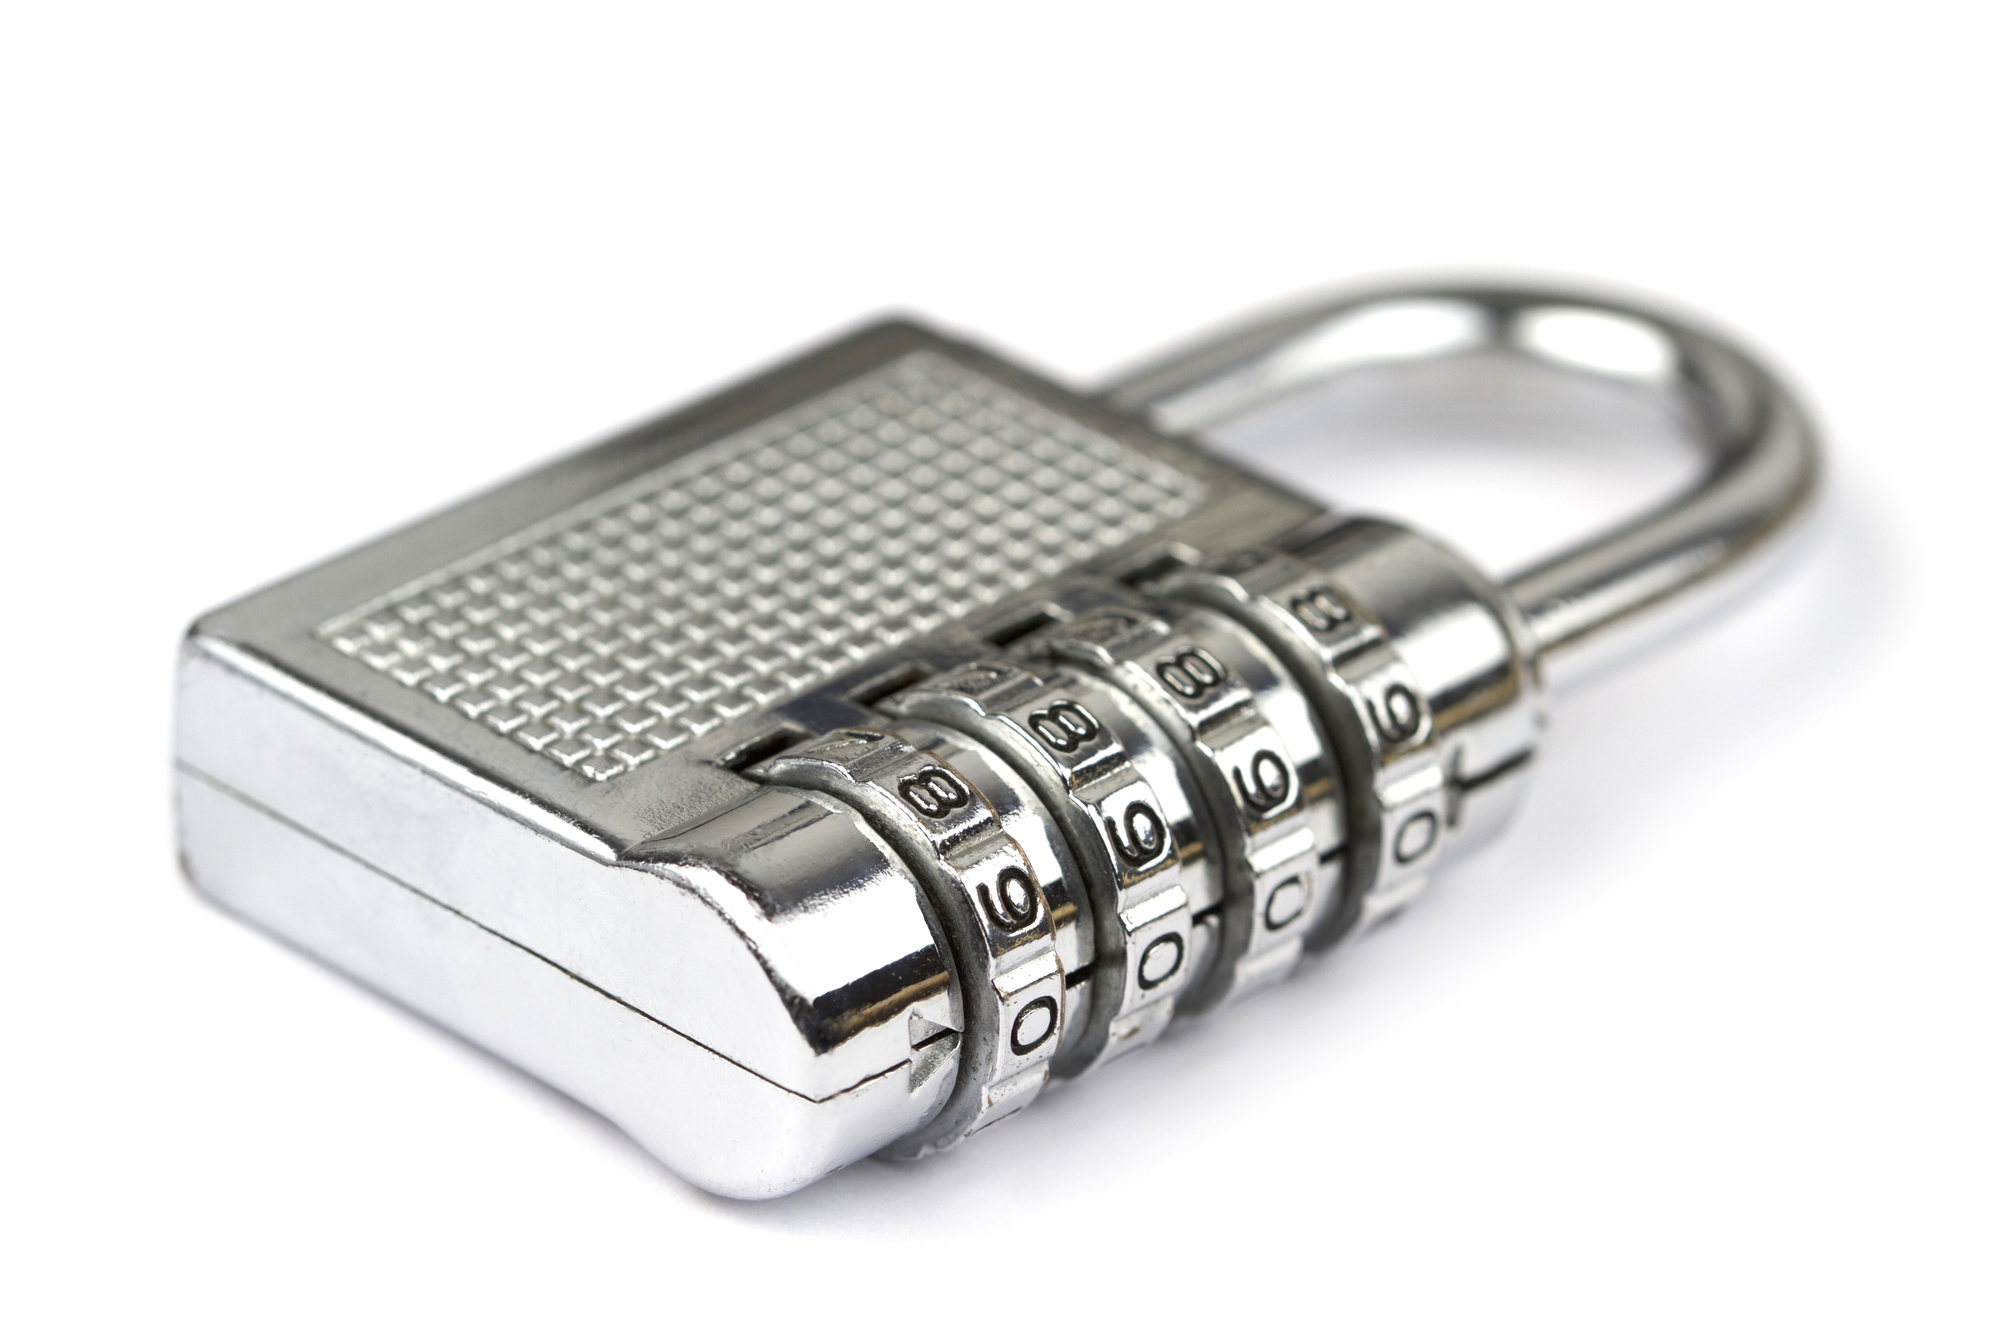 Image of the type of padlock that can be expected by the customers.